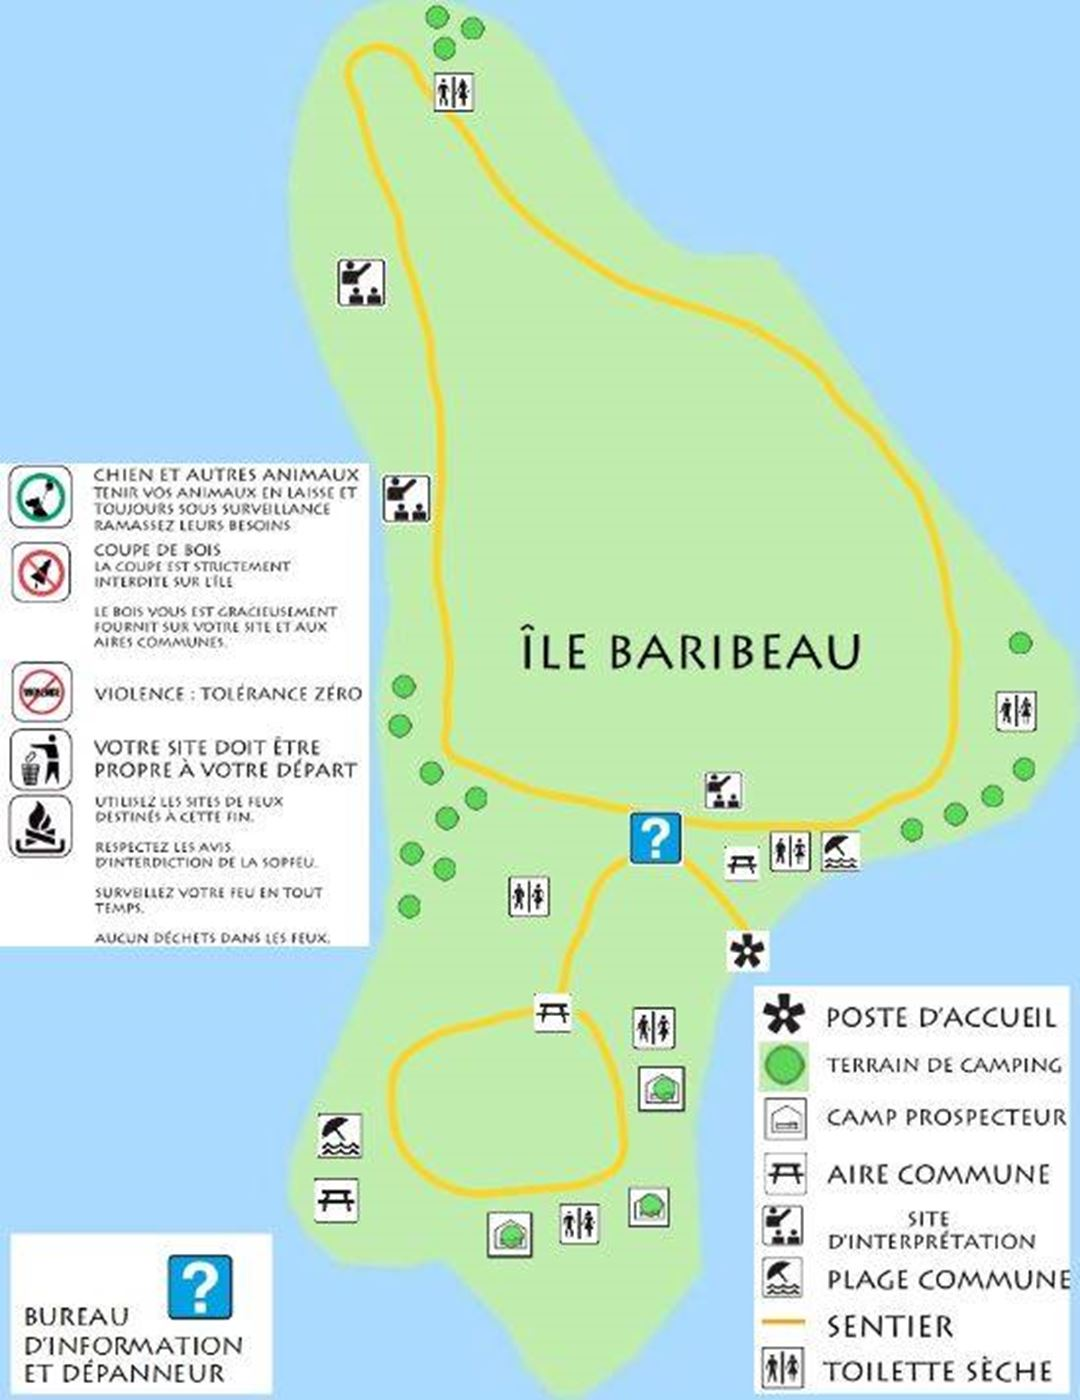 Map of the island with site.